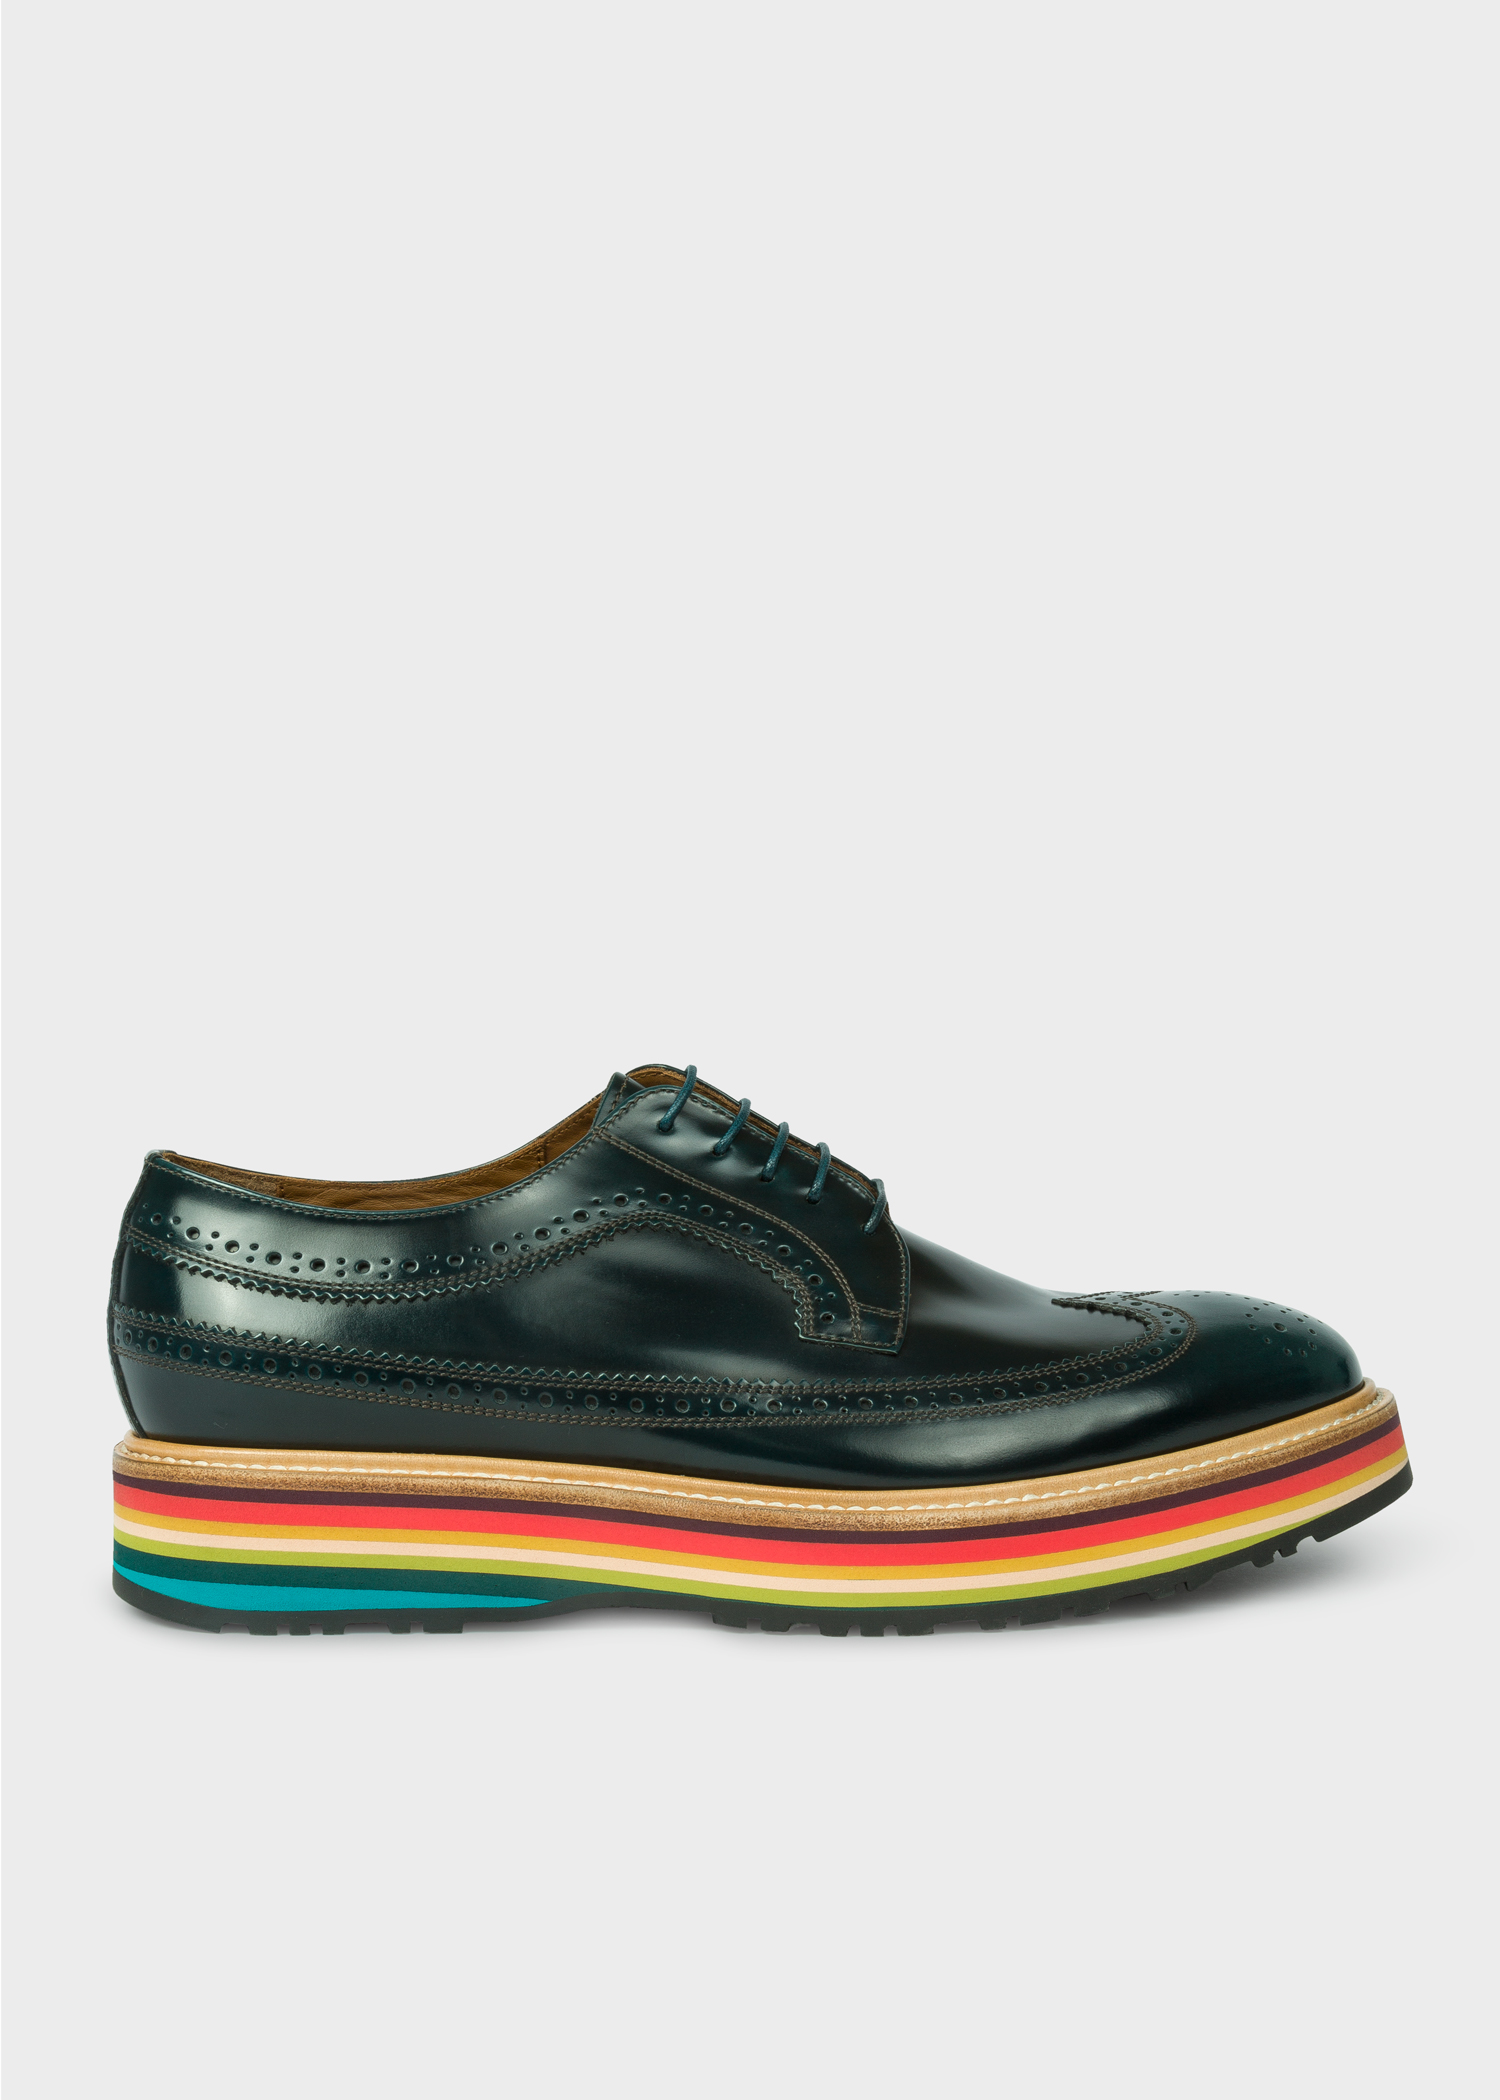 765c3b31a2c Men's Dark Green Leather 'Grand' Brogues With Striped Soles - Paul ...